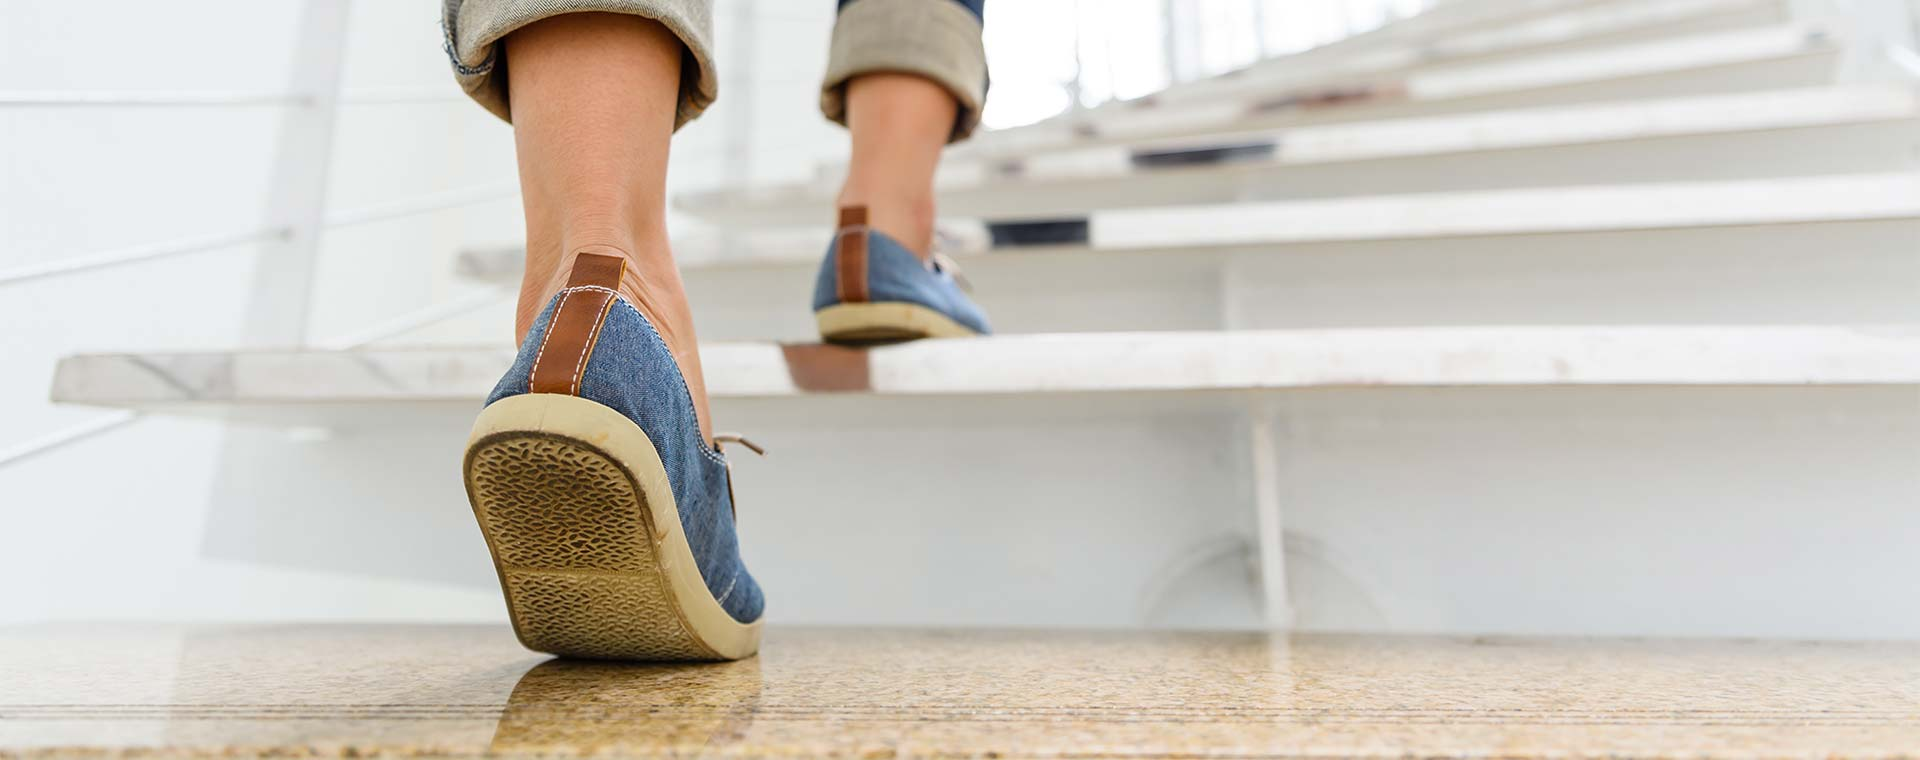 Close up of a young woman walking up stairs in flat, denim colored shoes.